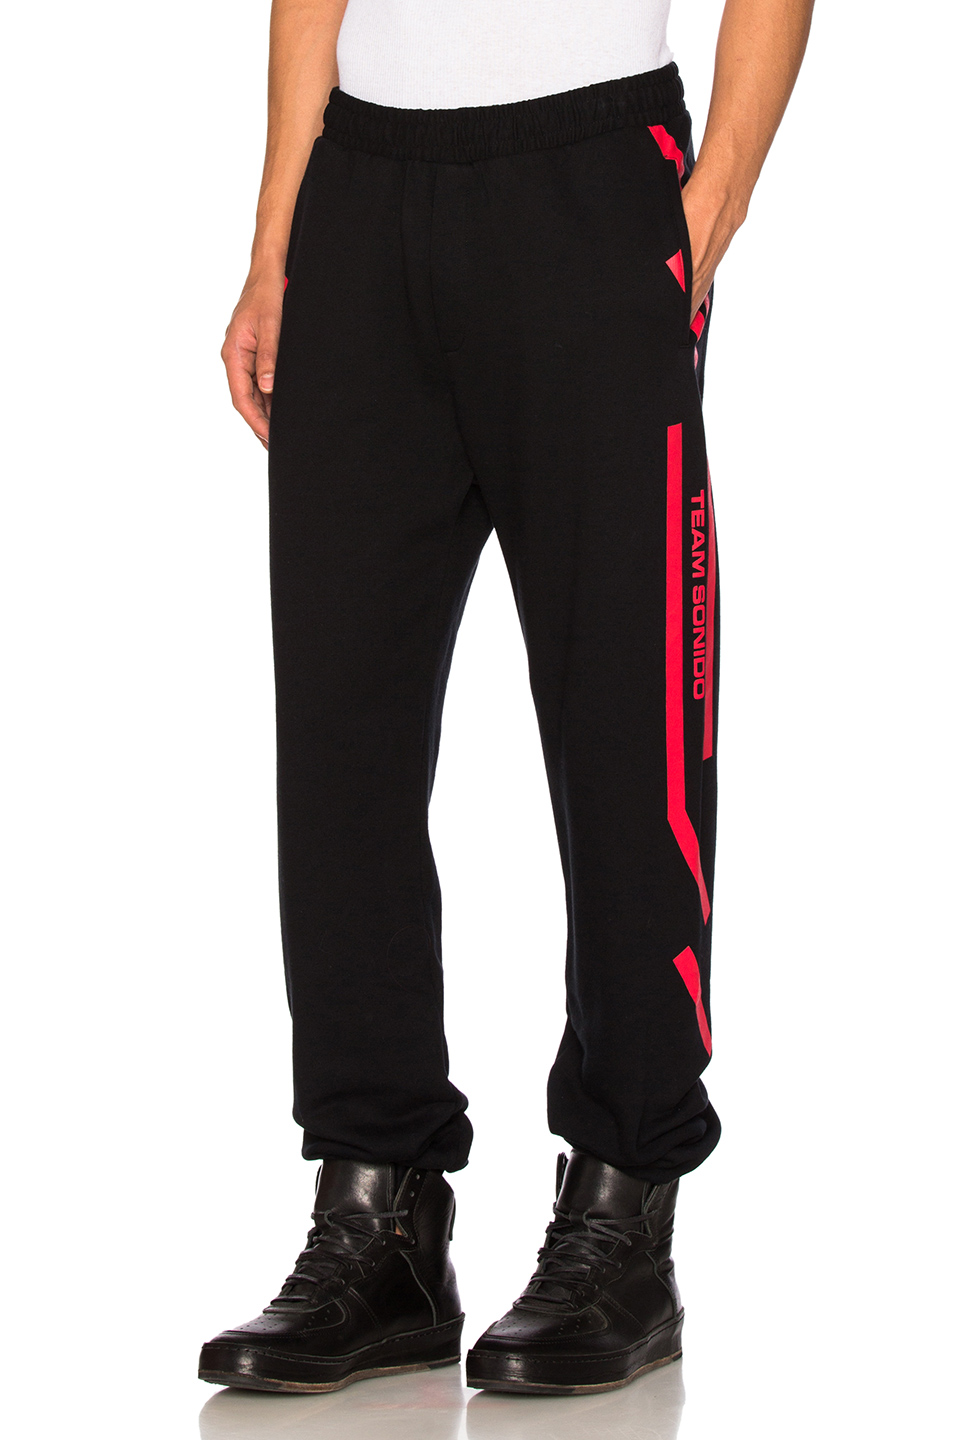 Marcelo Burlon Platon Pant in Black